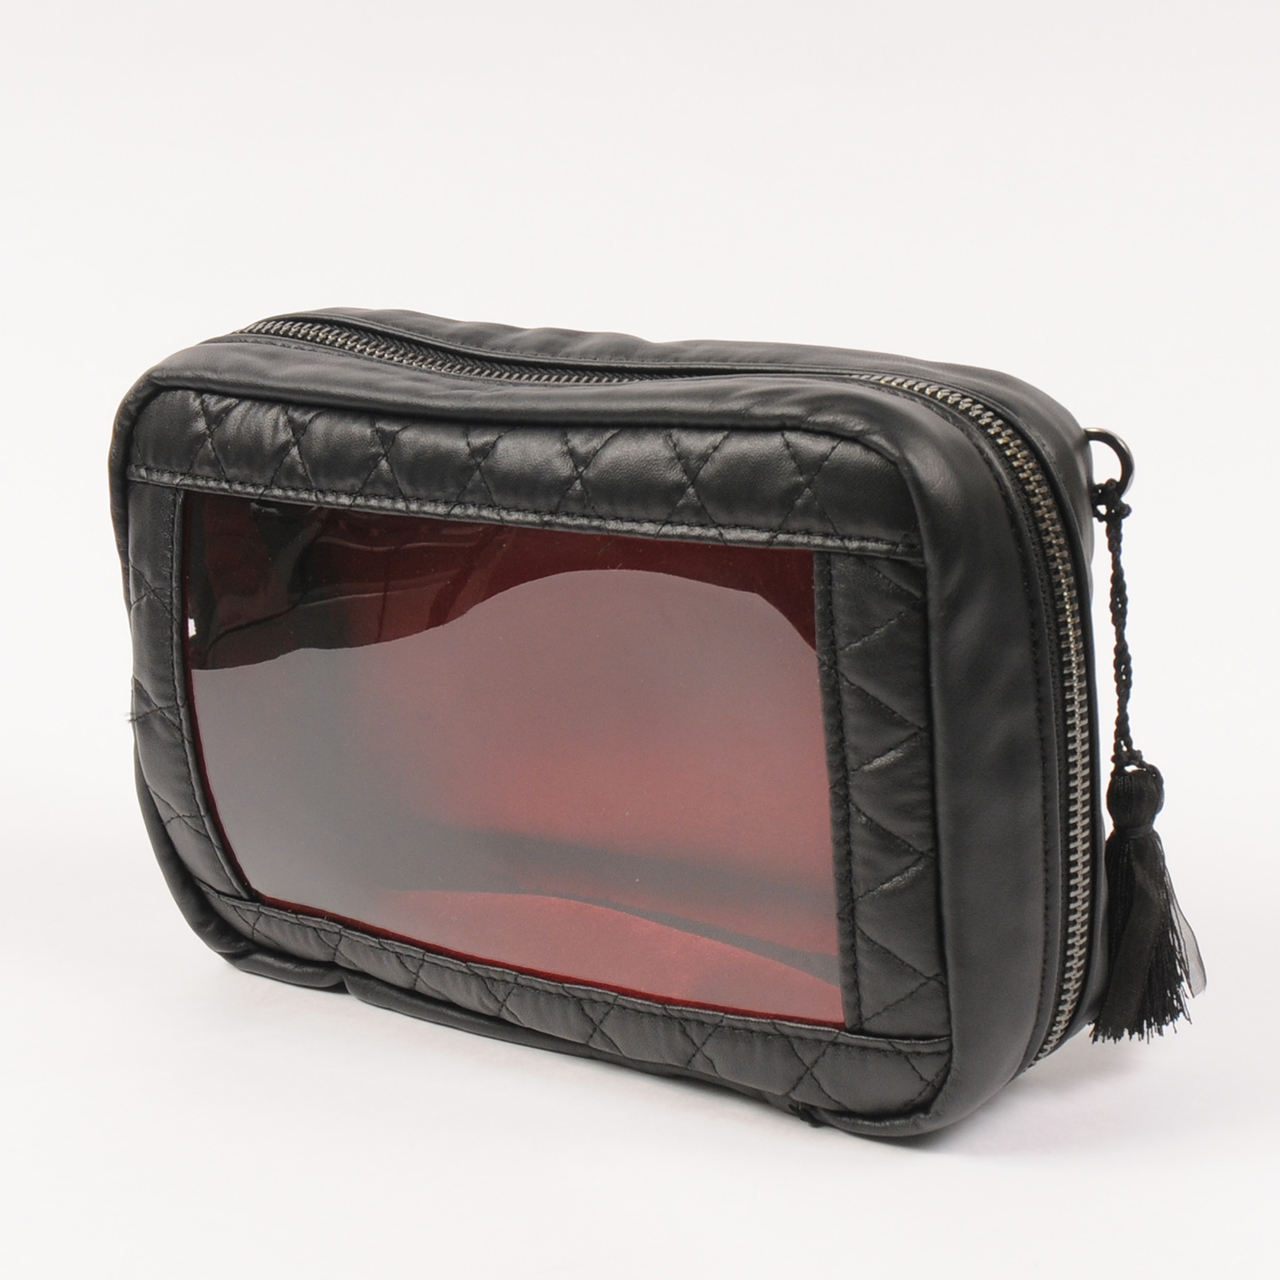 hs20SS-JR01 SQUARE POUCH -QUILTING (black)